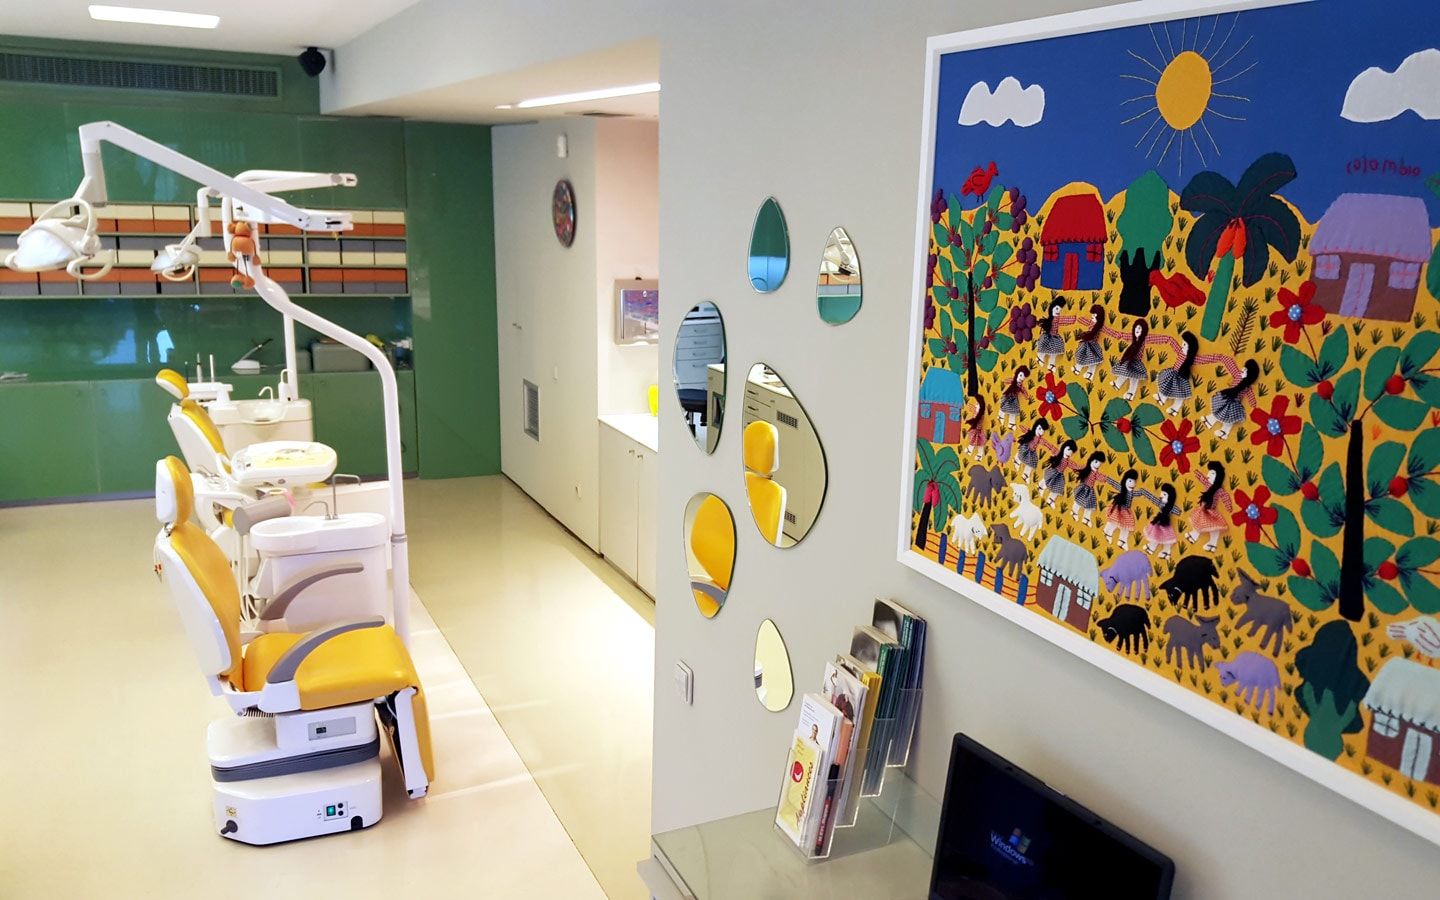 Kids' artwork & treatment chairs in Sanoudos Kapakian cosmetic orthodontic dental practice in Athens